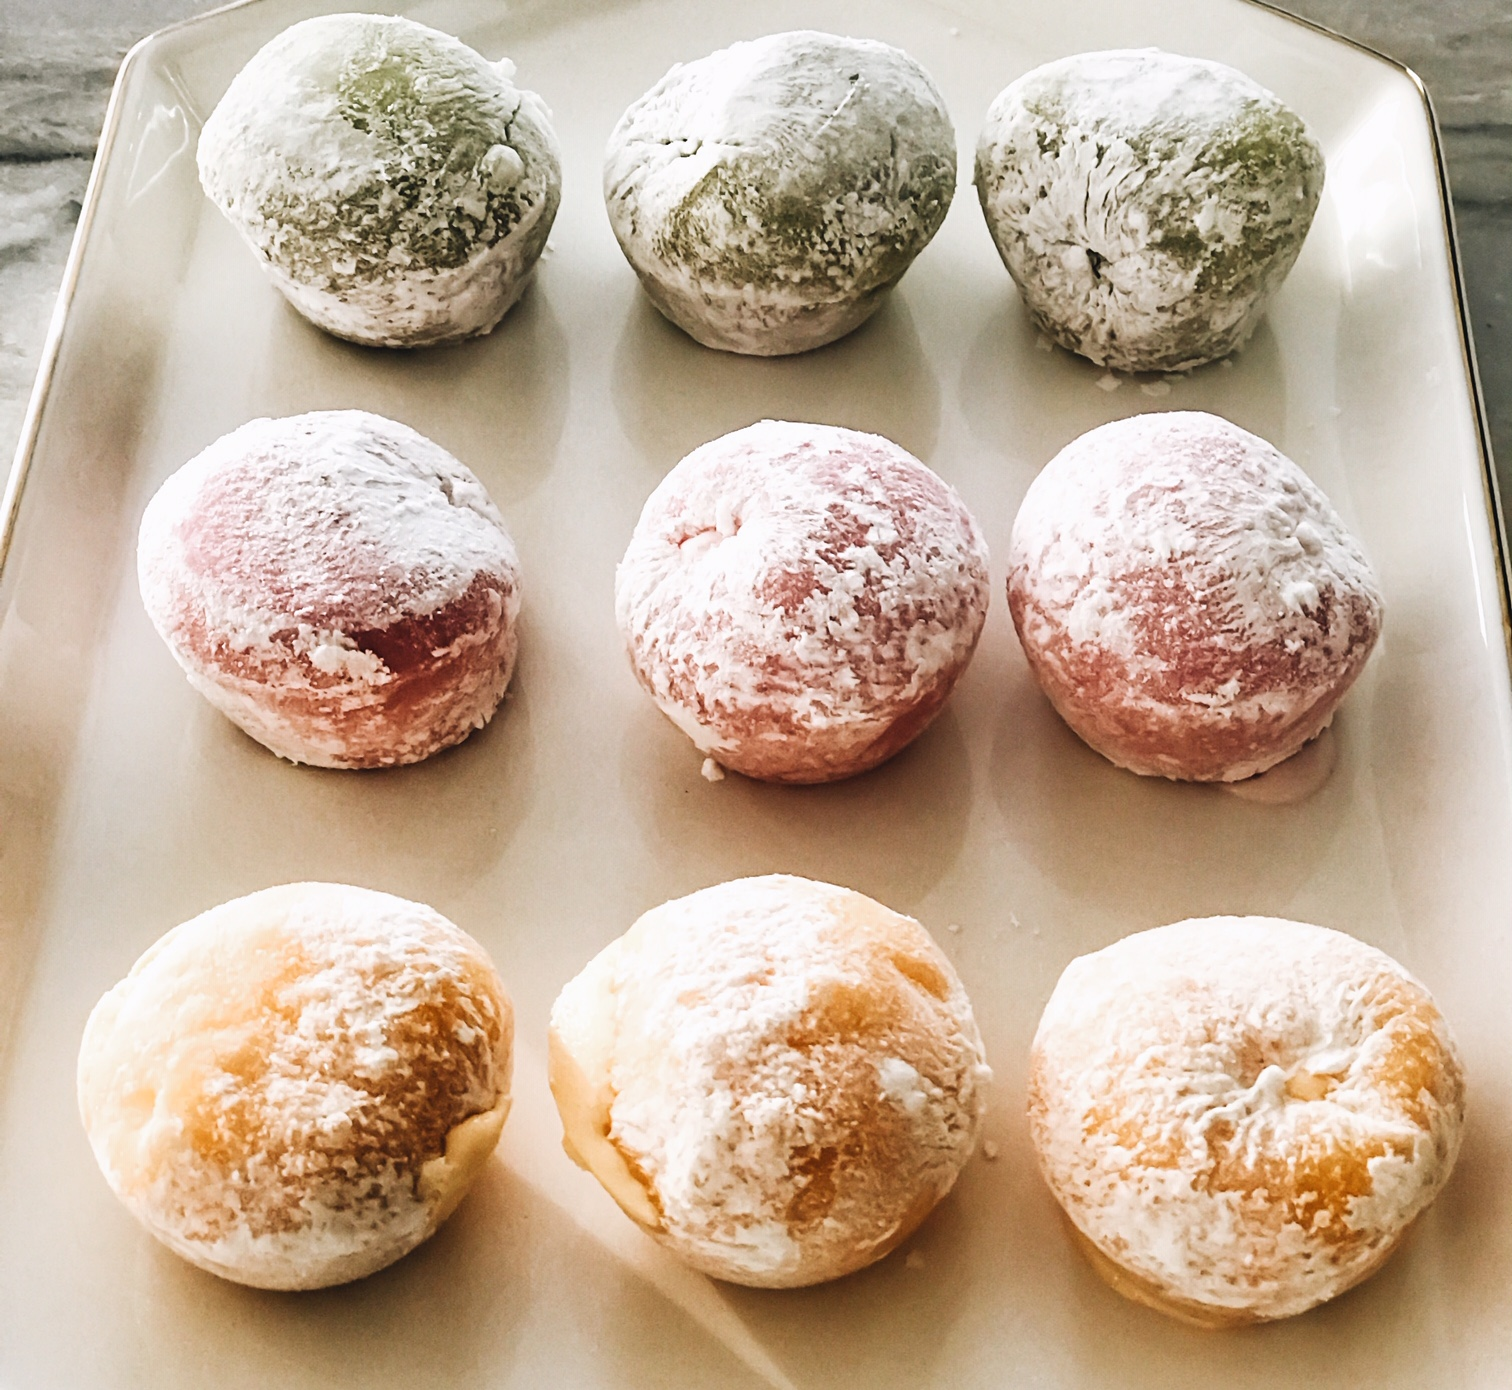 My/Mo Mochi Ice Cream Desserts. Tips For Hosting During The Holidays. How To Create A Memorable Experience For Your Guests At Your Home. ScentSicles instant Christmas Aroma, My/Mo Mochie Ice Cream desserts, Cinzano Prosecco Prosecco Bellini recipe, Fran's Chocolates, Salted caramels. #sponsored #ad #edcrepeatbboxx #holiday #ideas